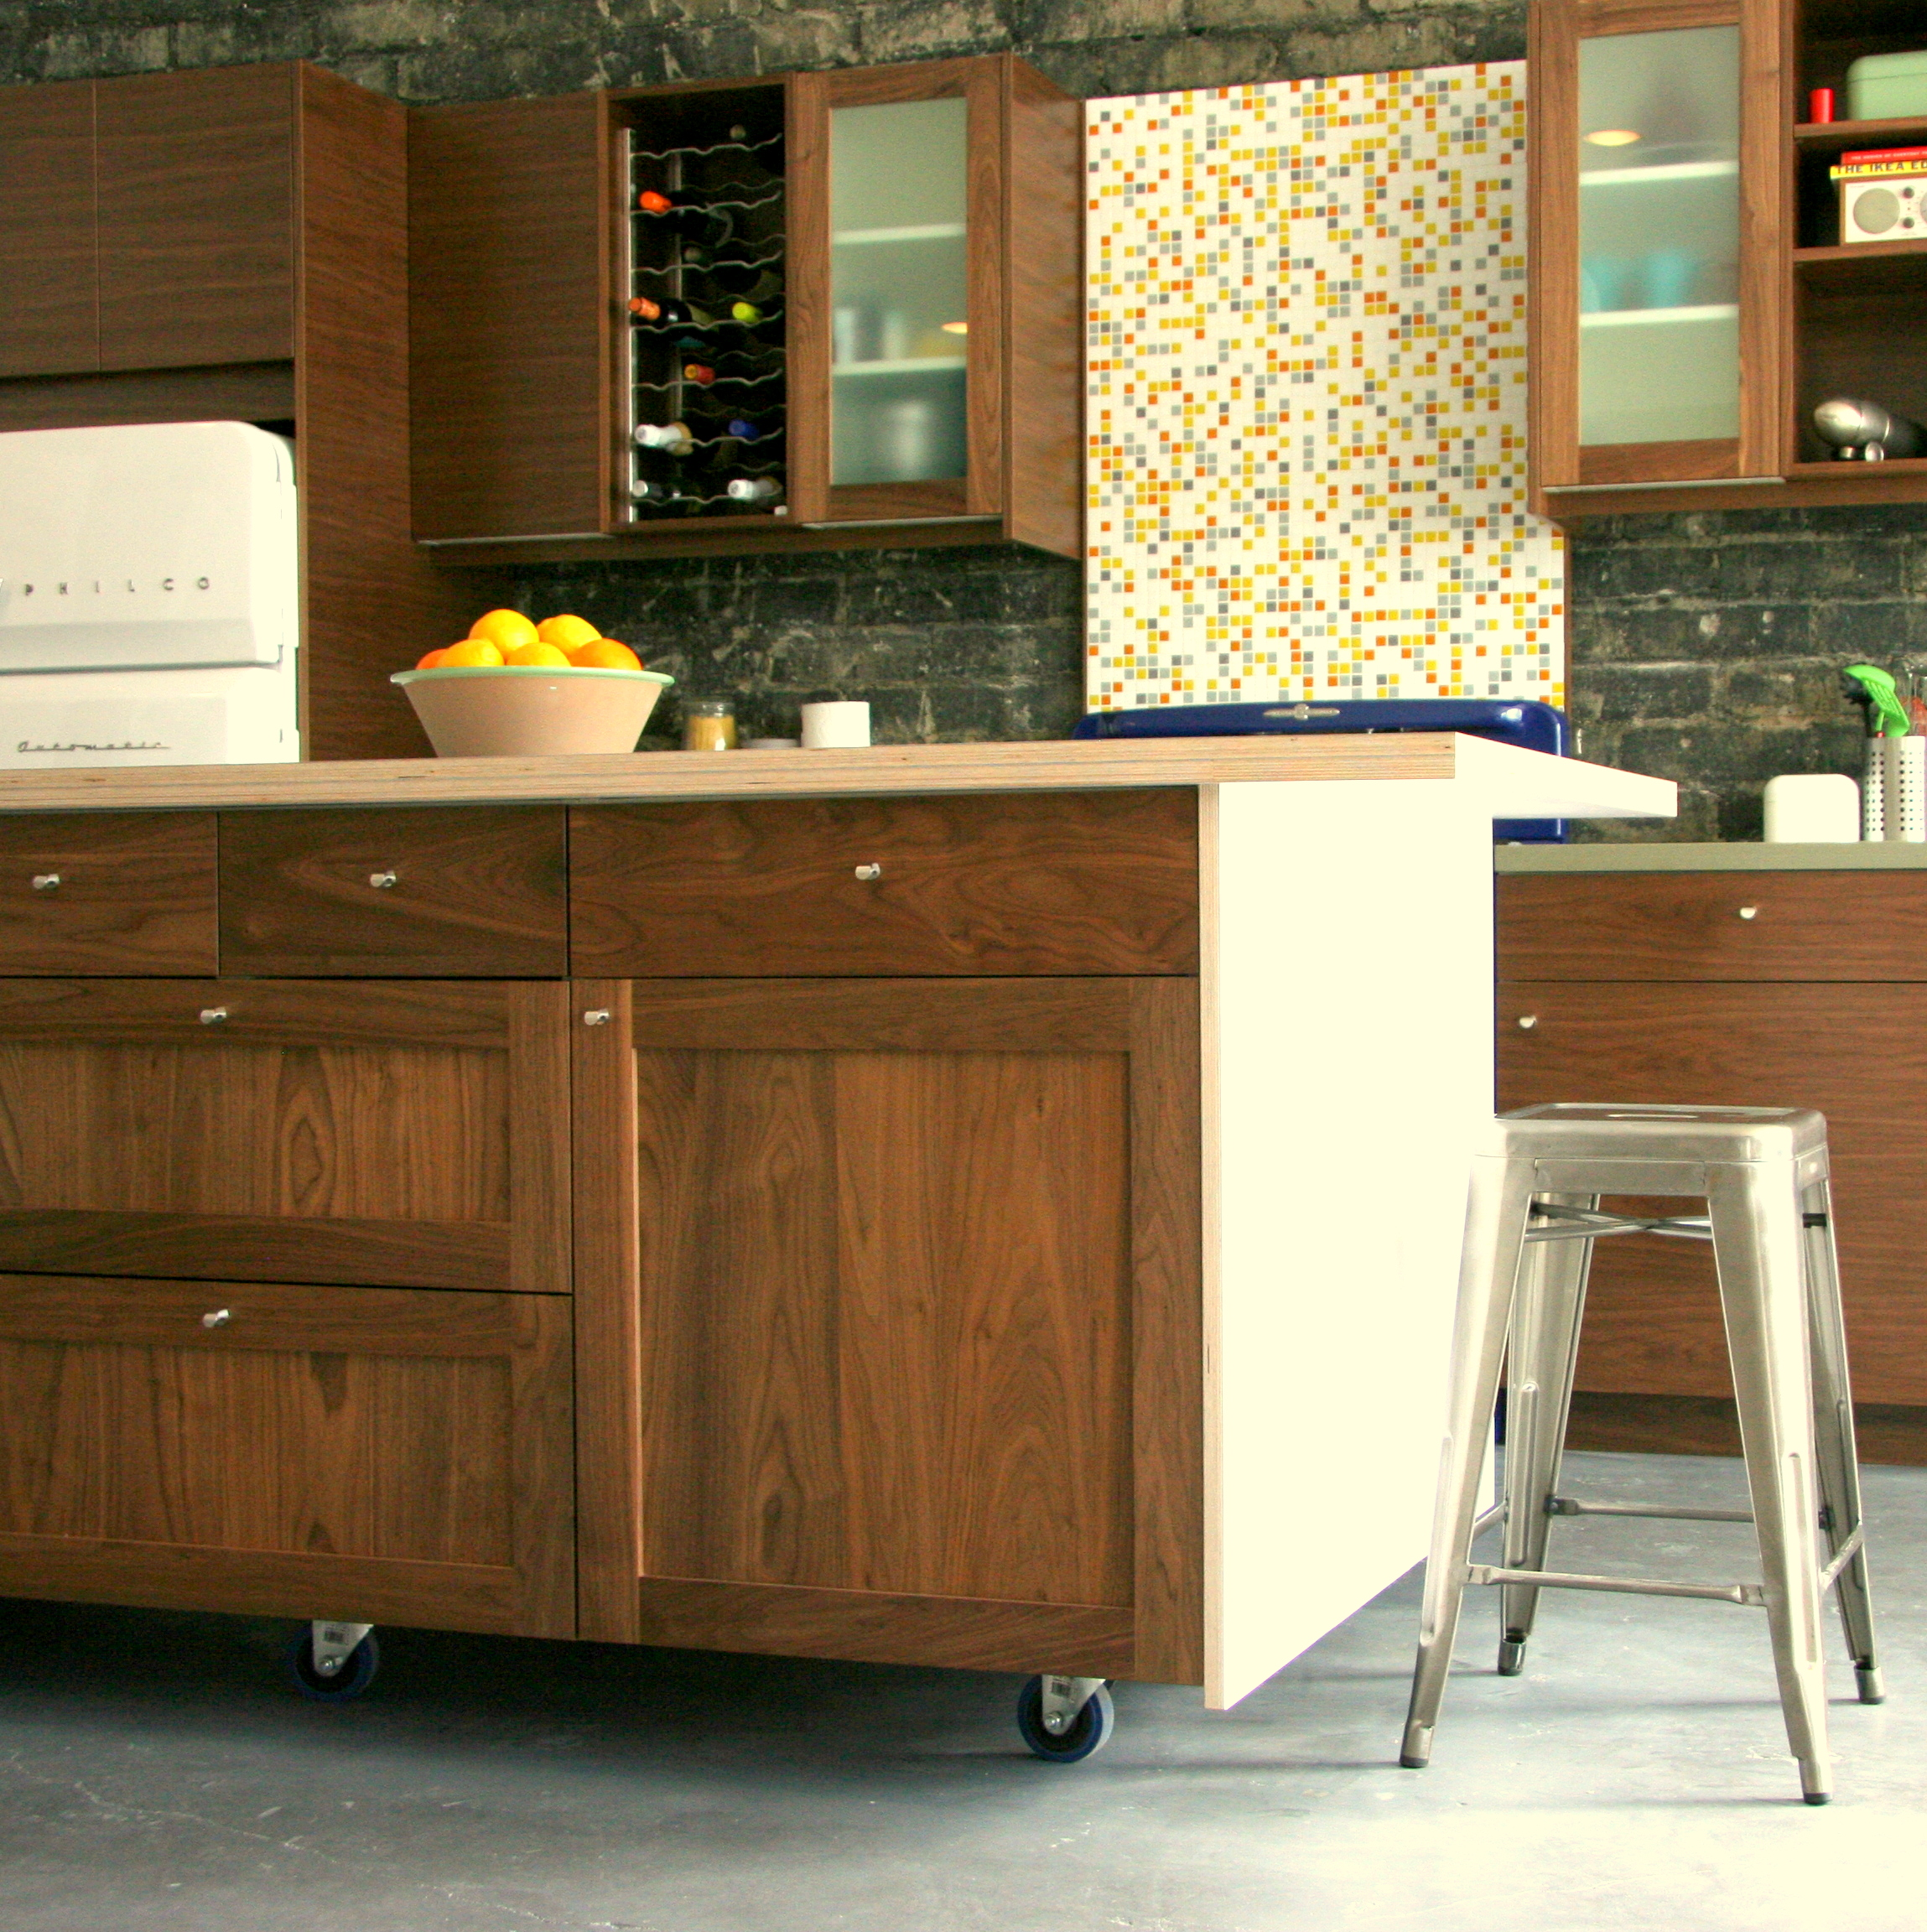 kitchen island on wheels 罎站竊 cabinet wholesalers kitchen cabinets